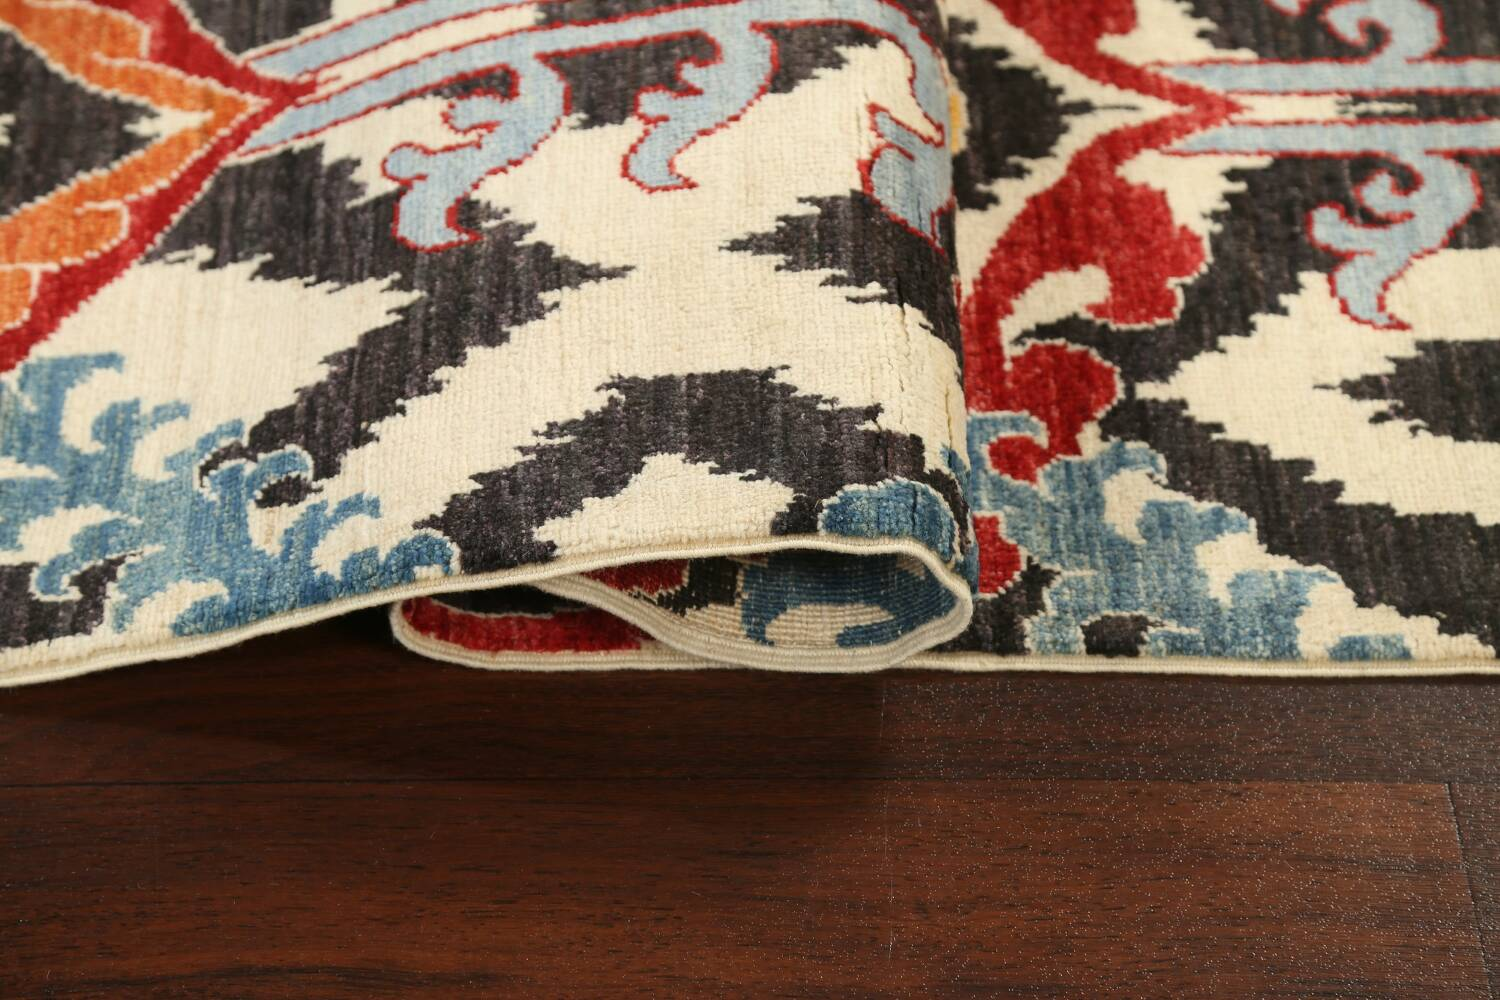 All-Over Floral IKats Oriental Runner Rug 3x8 image 13